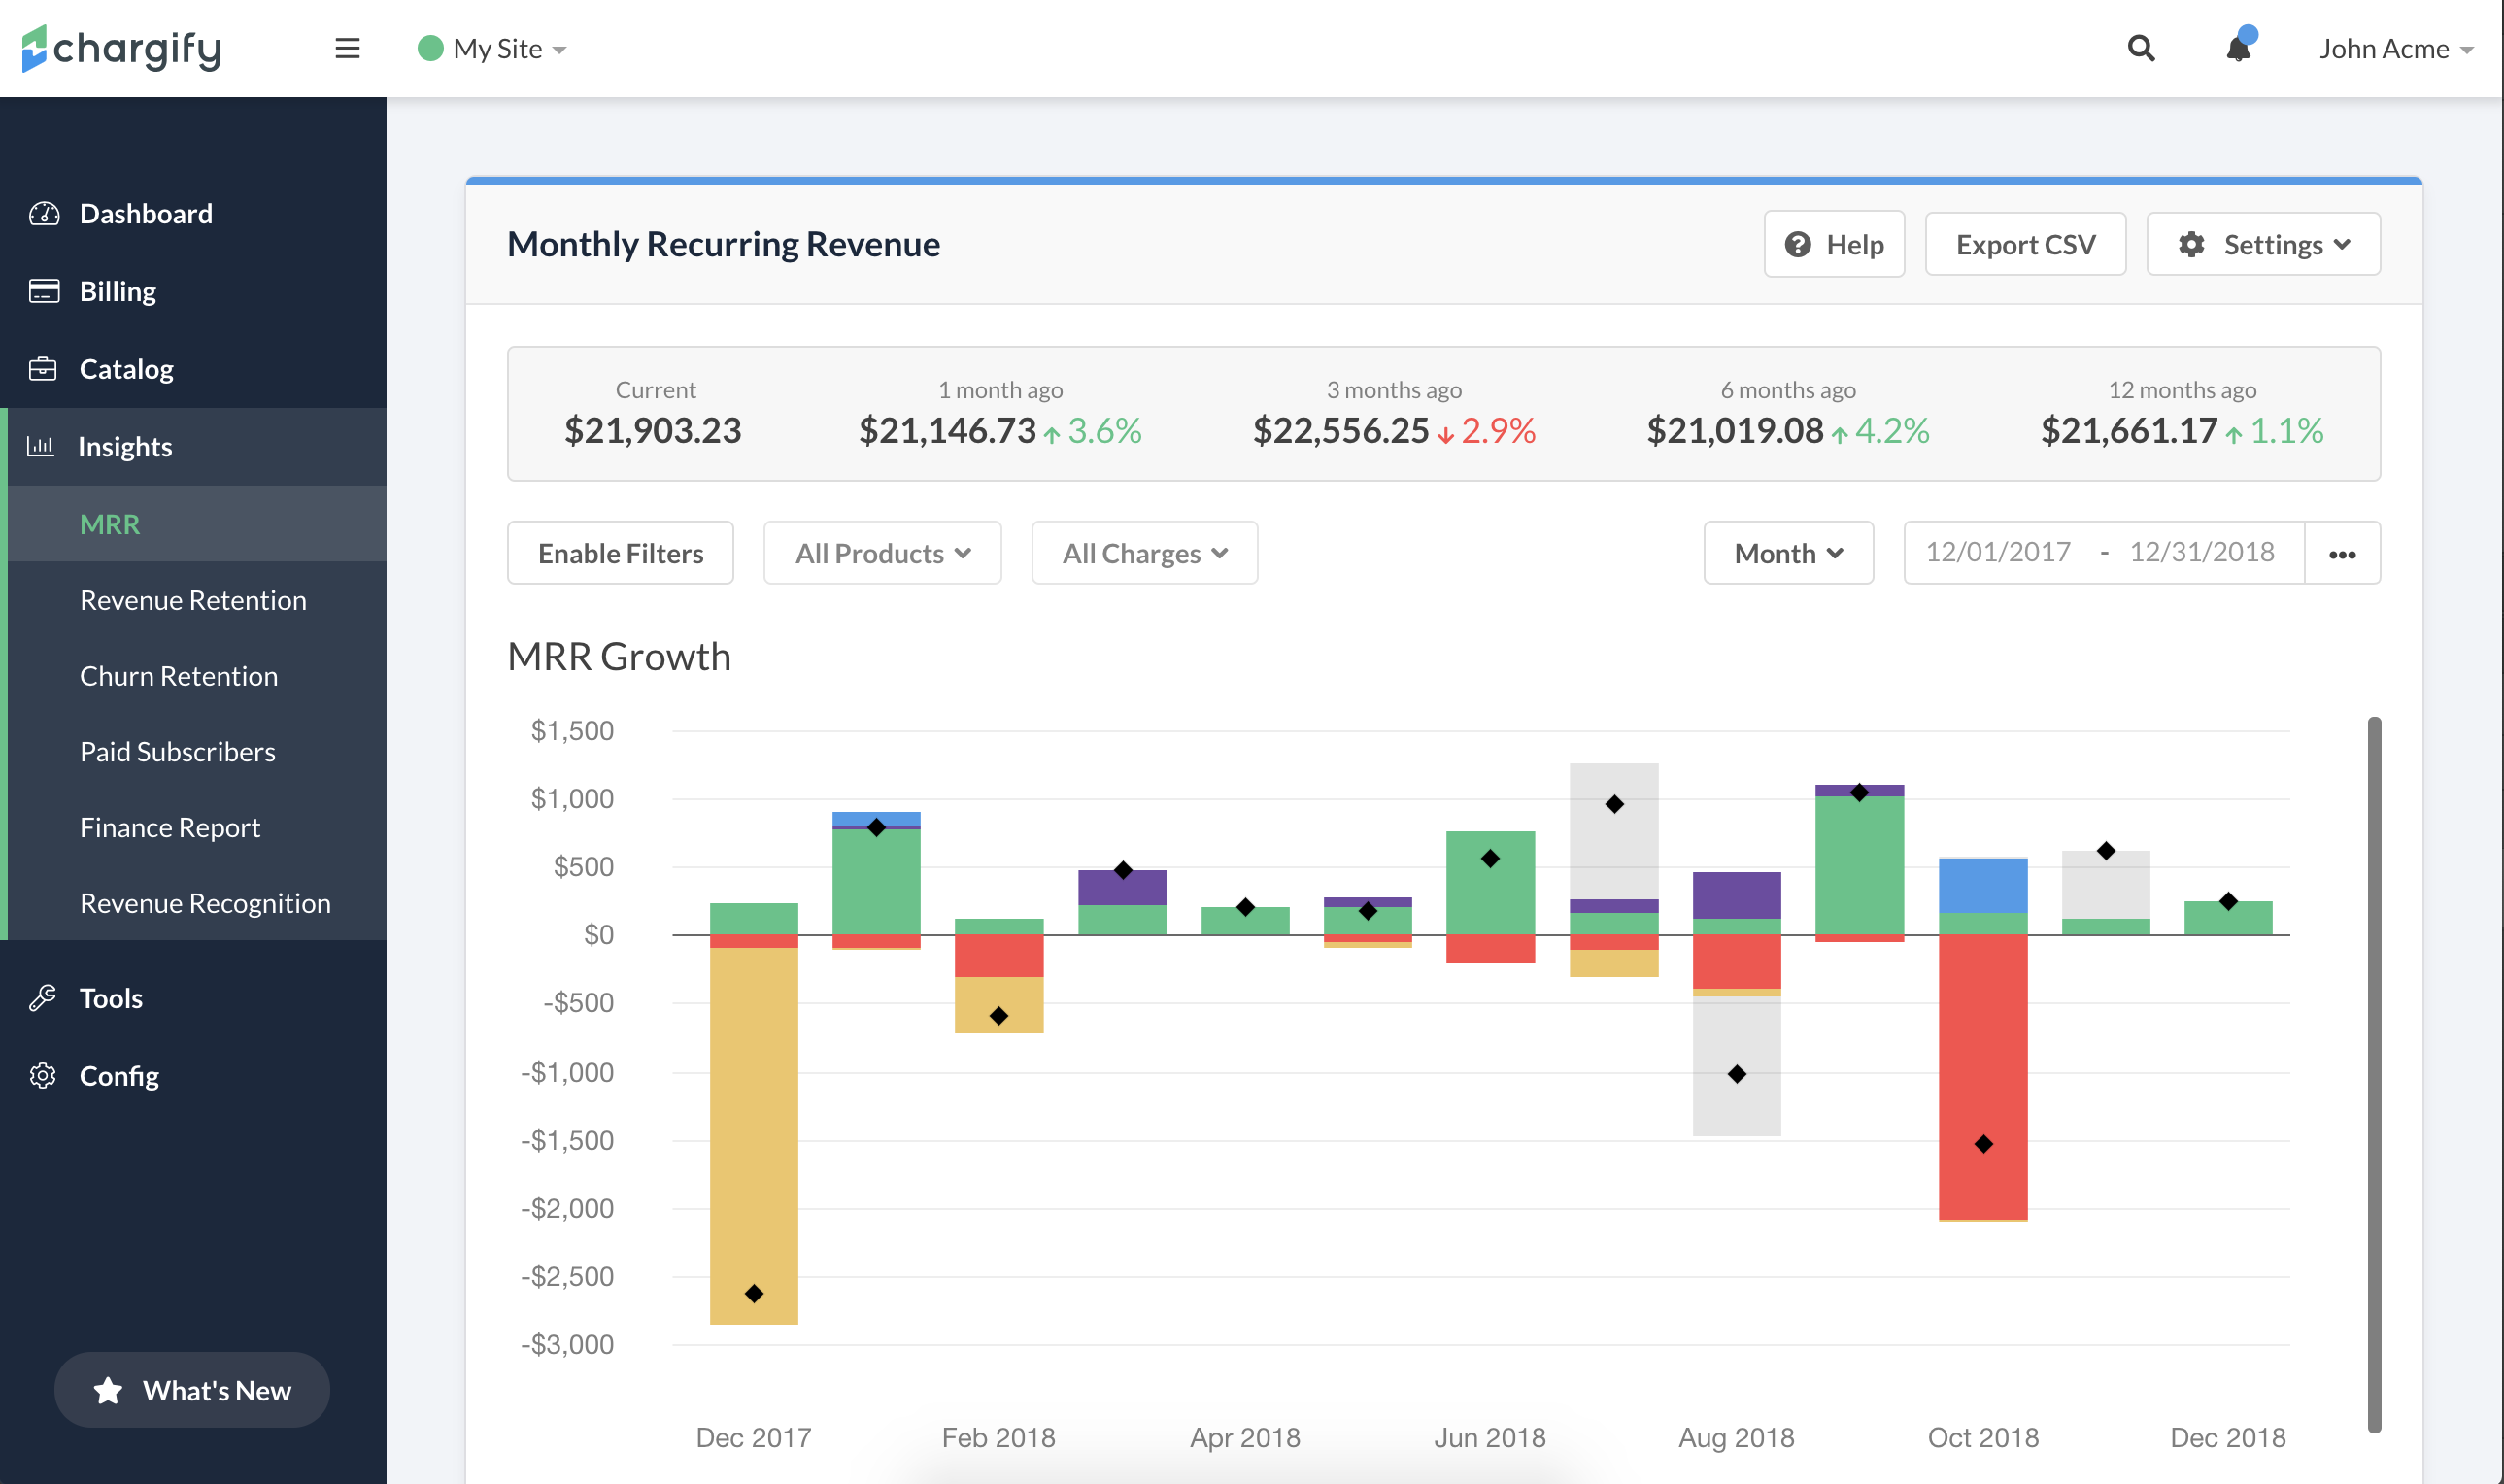 Chargify Demo - Subscription Analytics & Insights